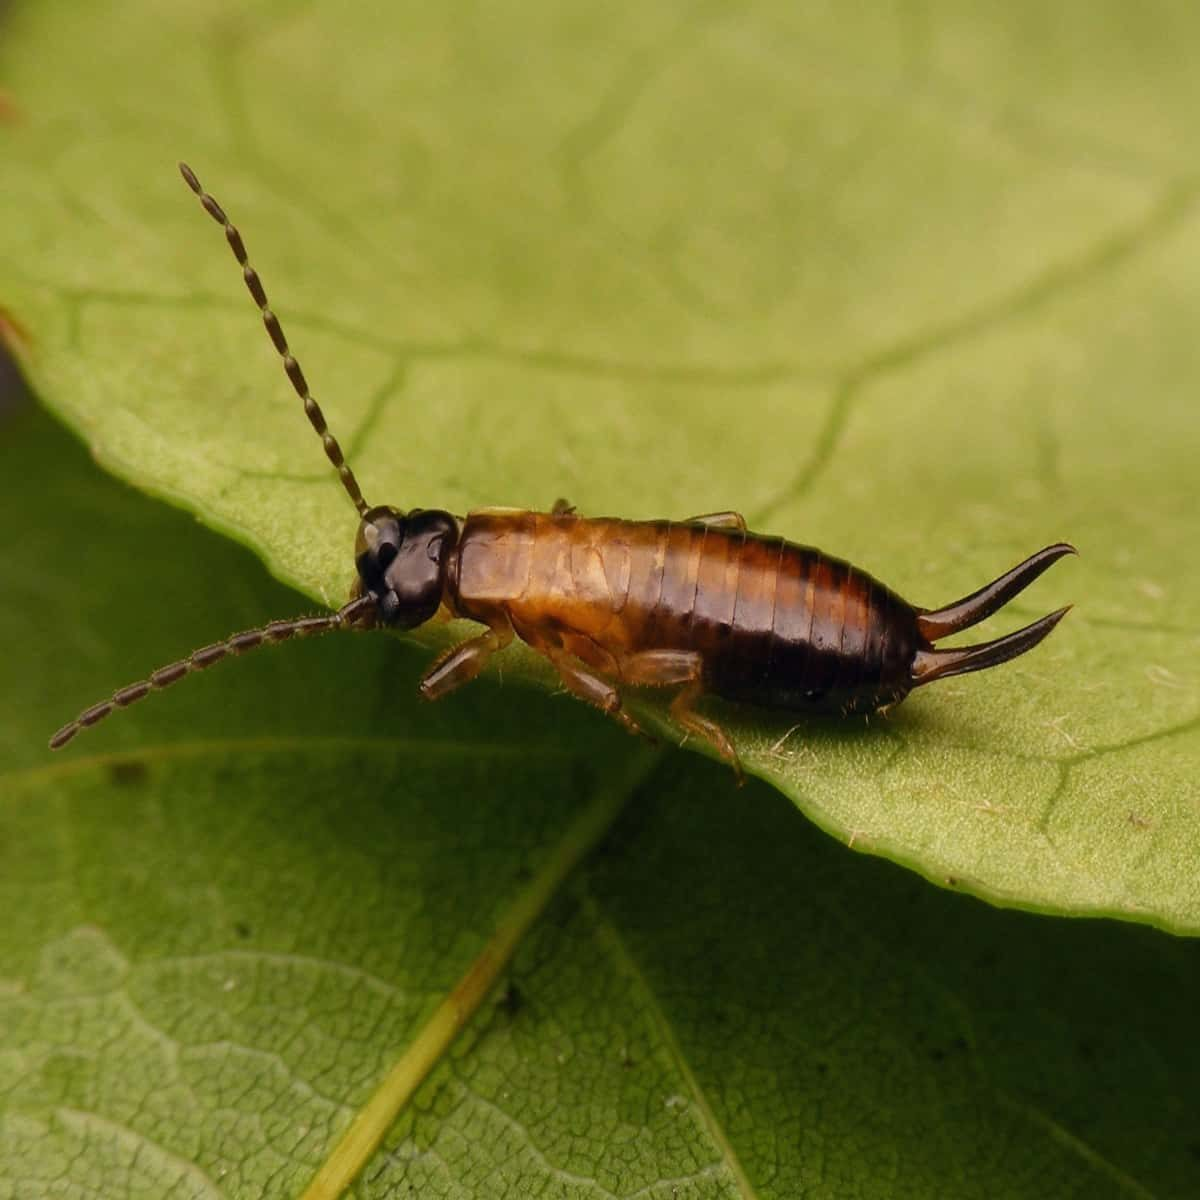 Earwig nymph